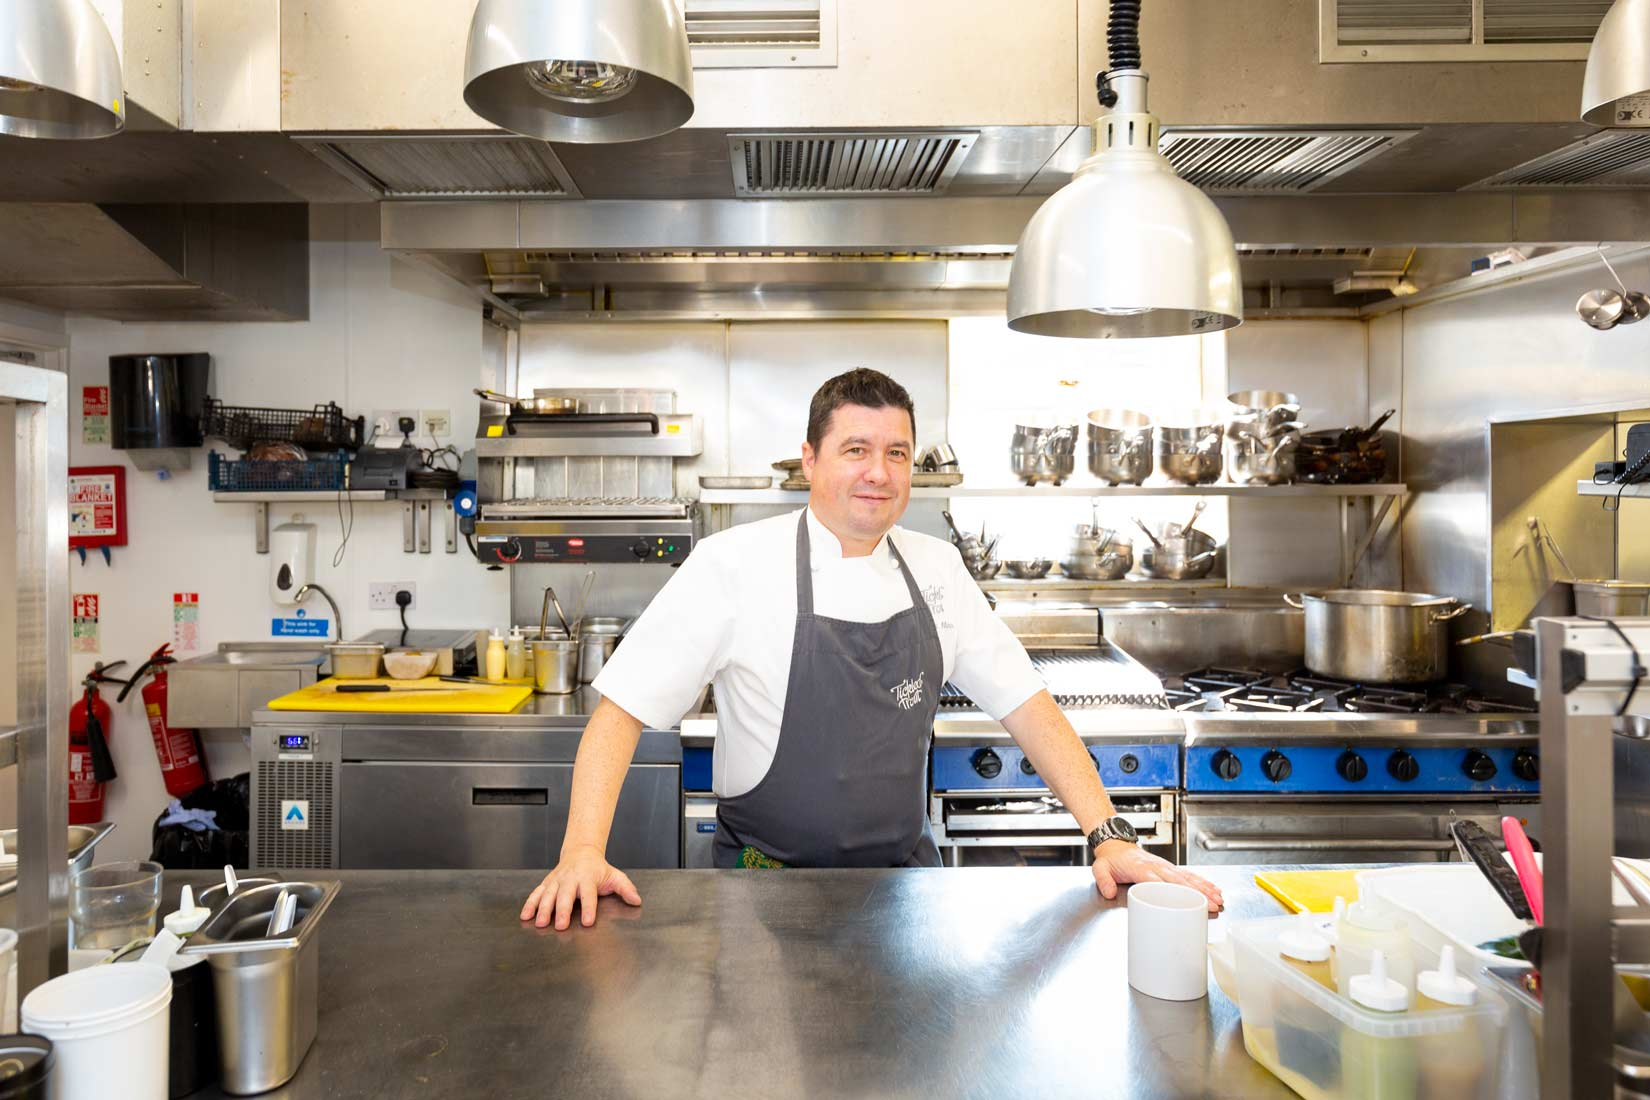 Portrait photography of chef standing over a stainless steel table